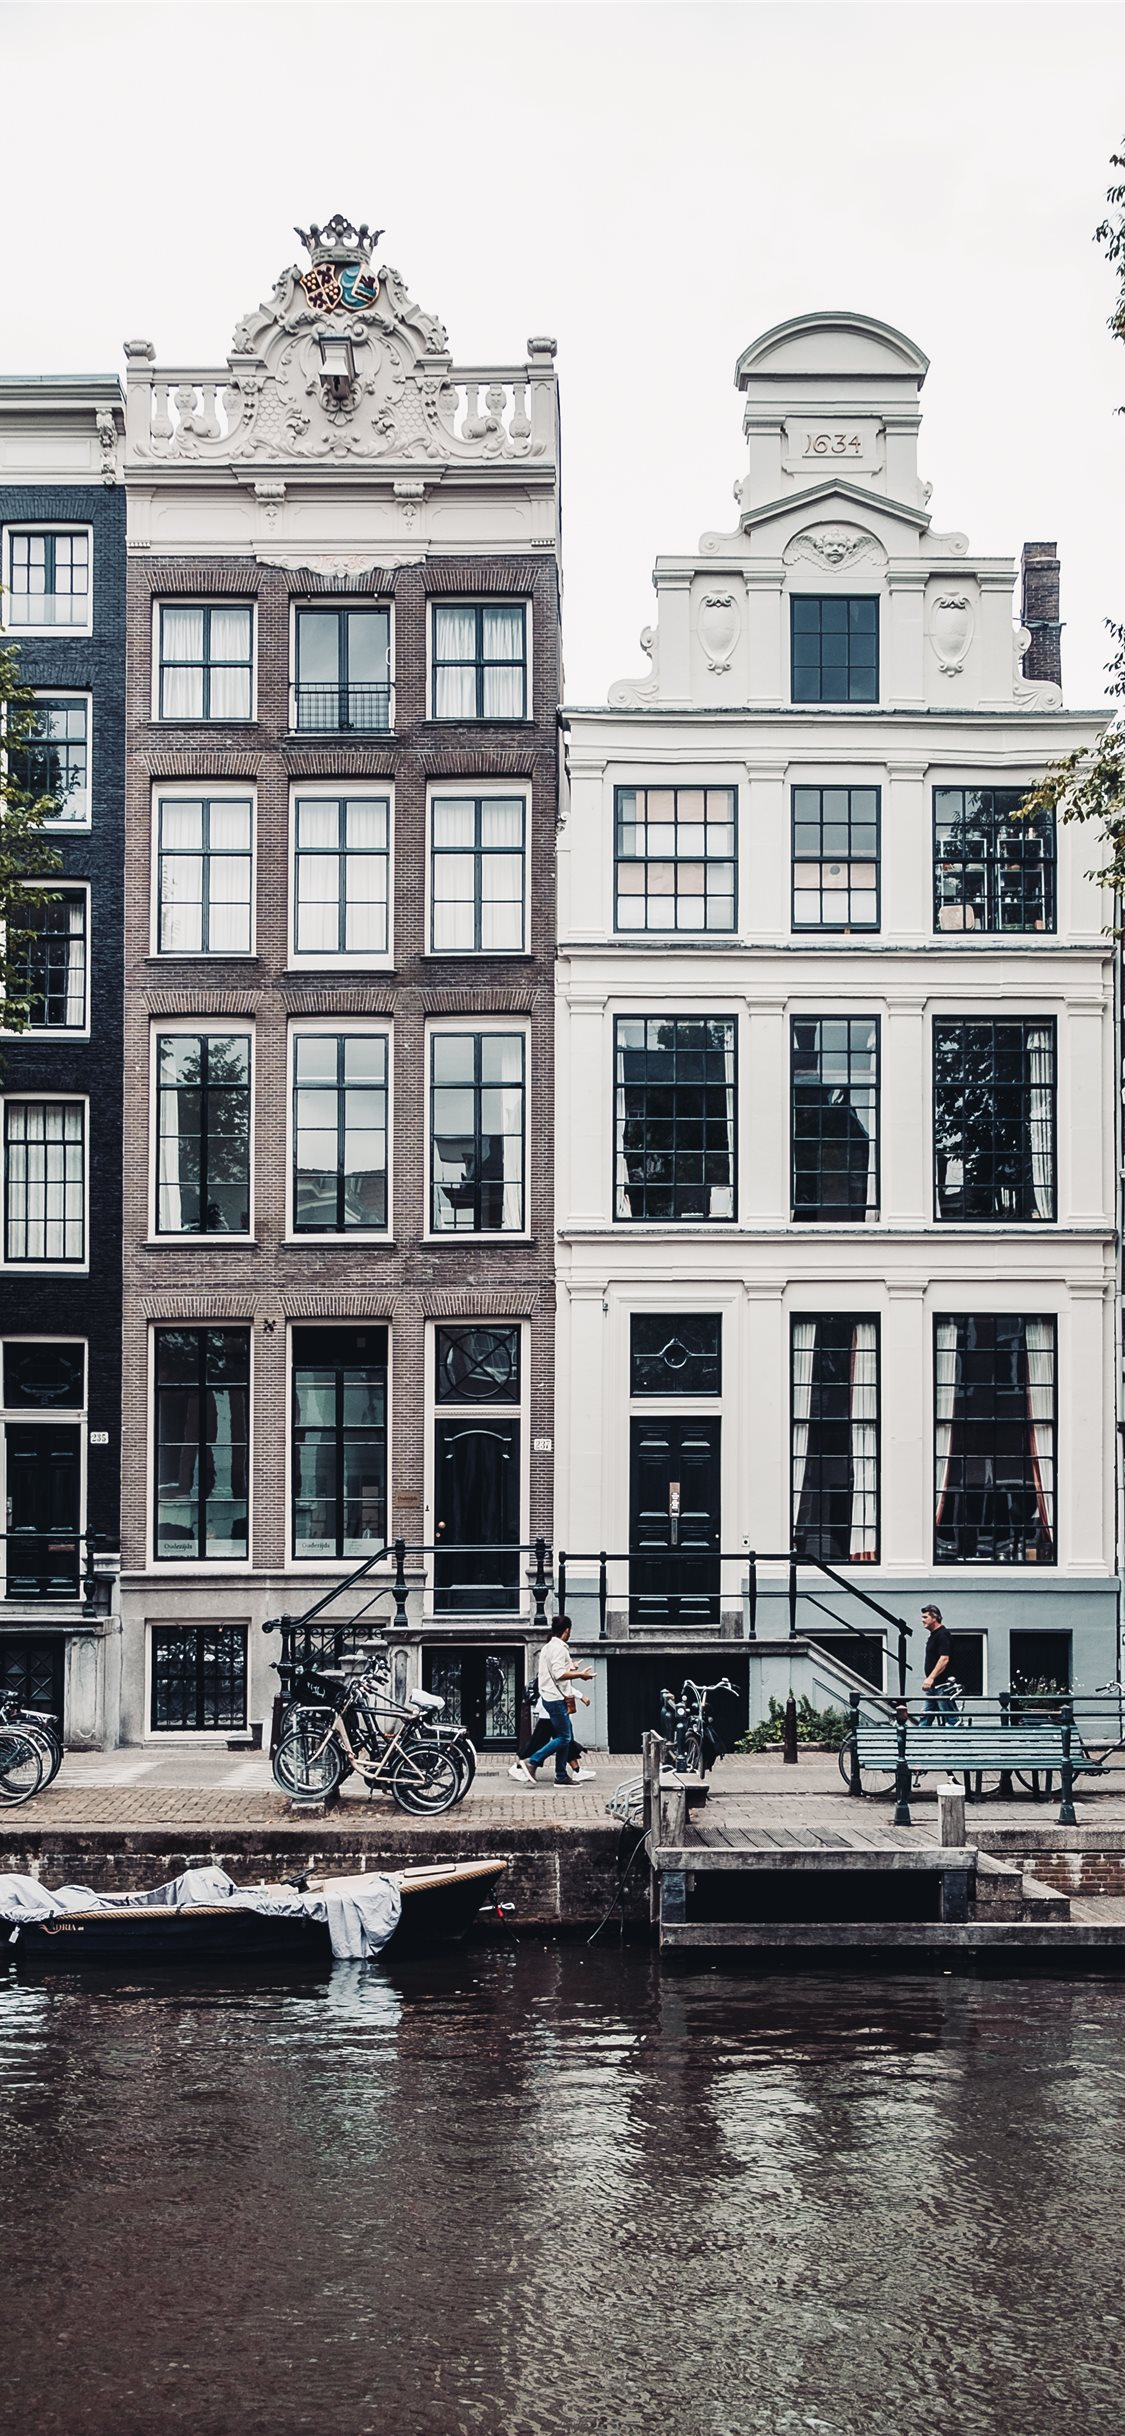 Pedestrians In Amsterdam Iphone X Wallpapers Free Download